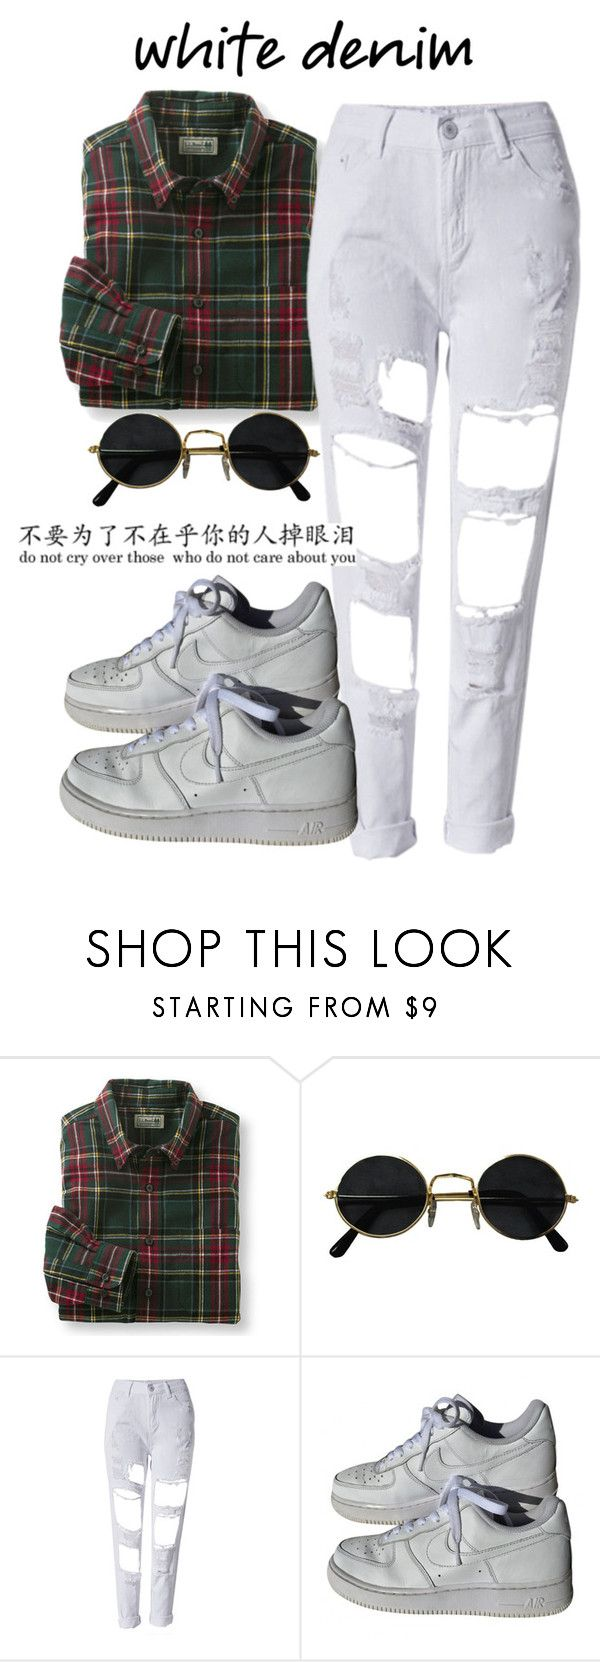 """Sem título #710"" by joananazar on Polyvore featuring moda, NIKE e whitejeans"